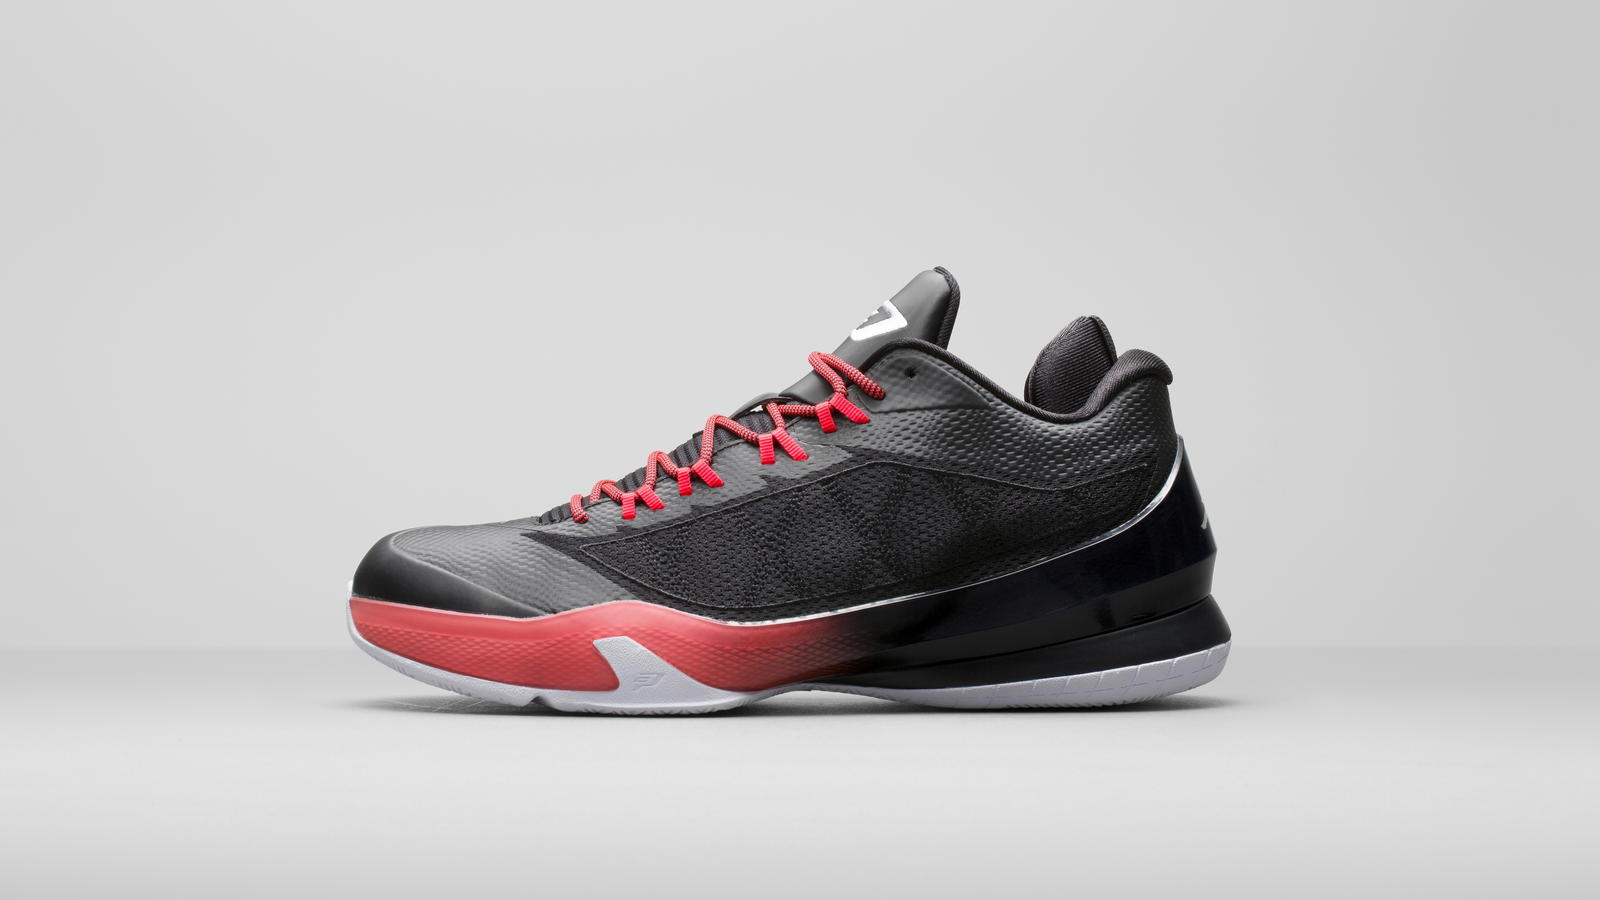 best website a09e8 93fa6 Jordan Brand Introduces the Jordan CP3.VIII - Nike News